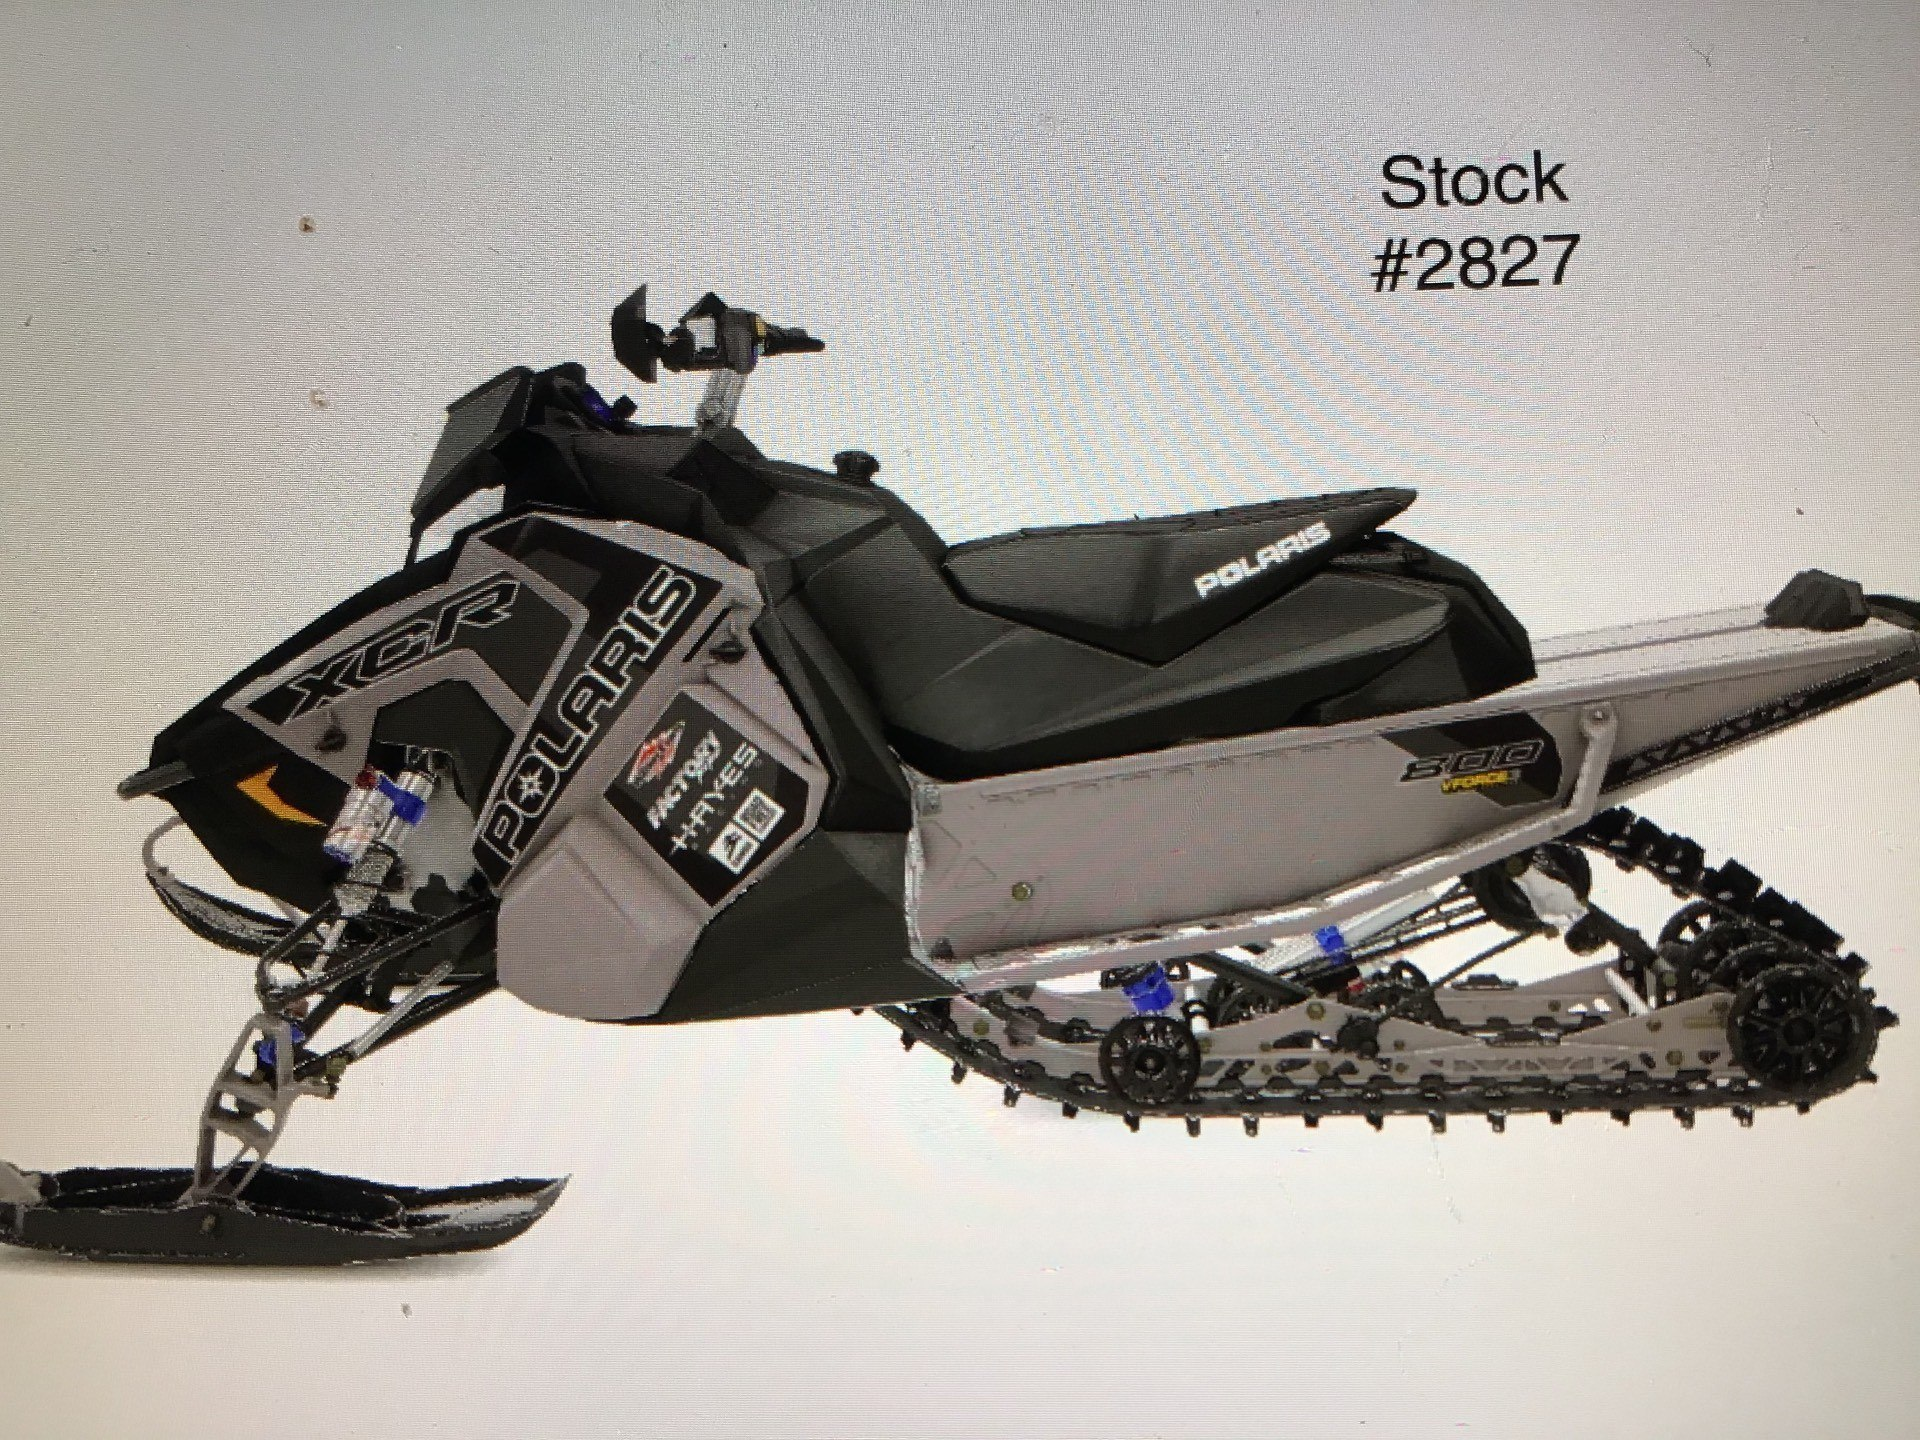 2020 Polaris 800 Indy XCR in Mohawk, New York